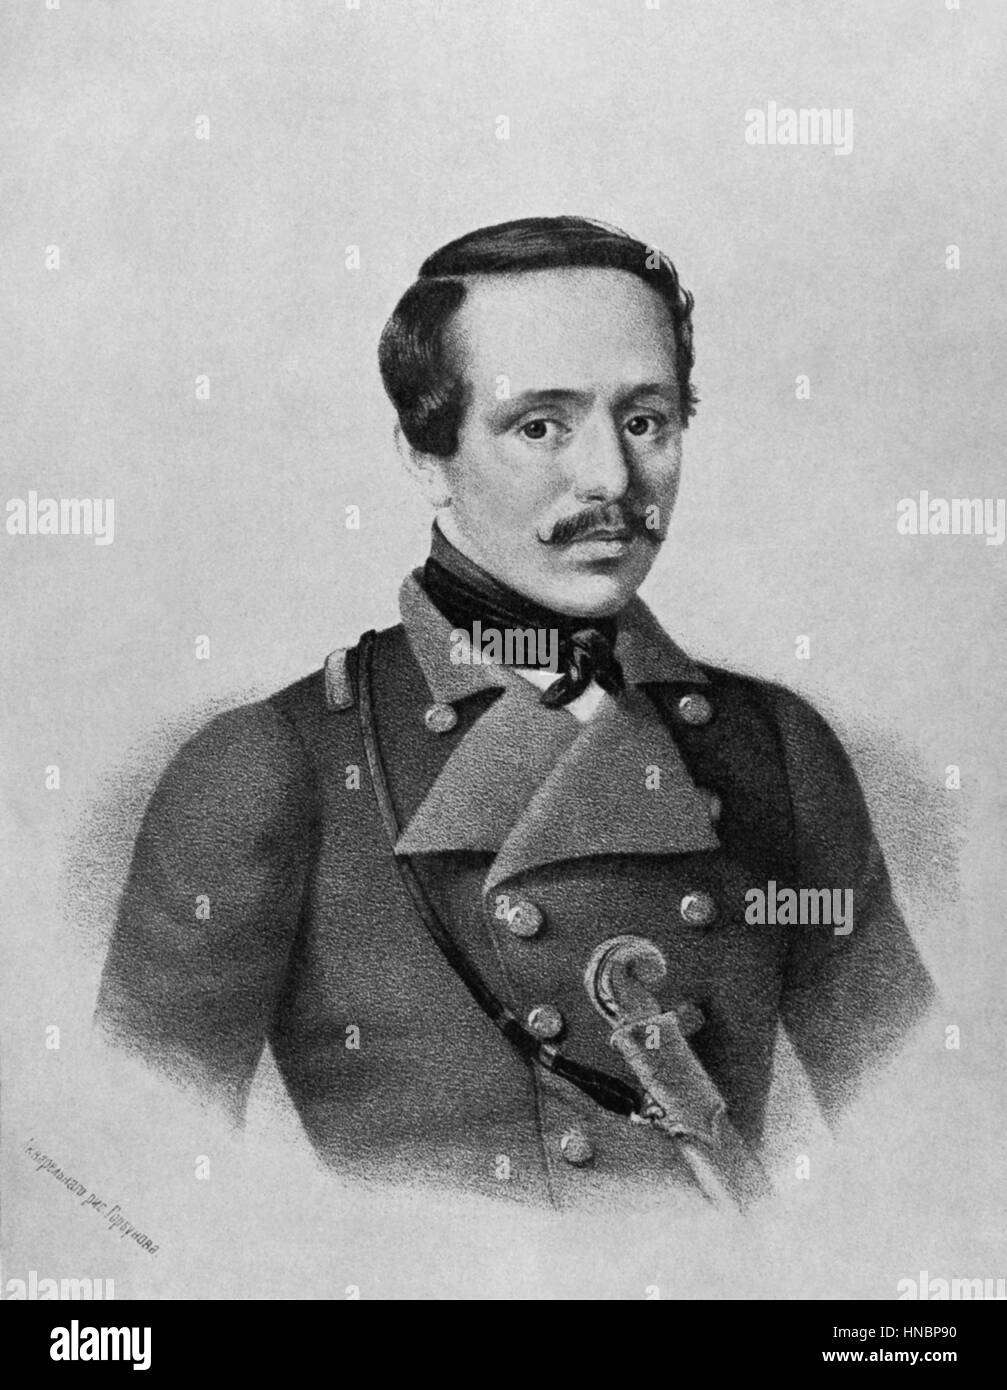 MIKHAIL LERMONTOV  01 January 1835 - Stock Image